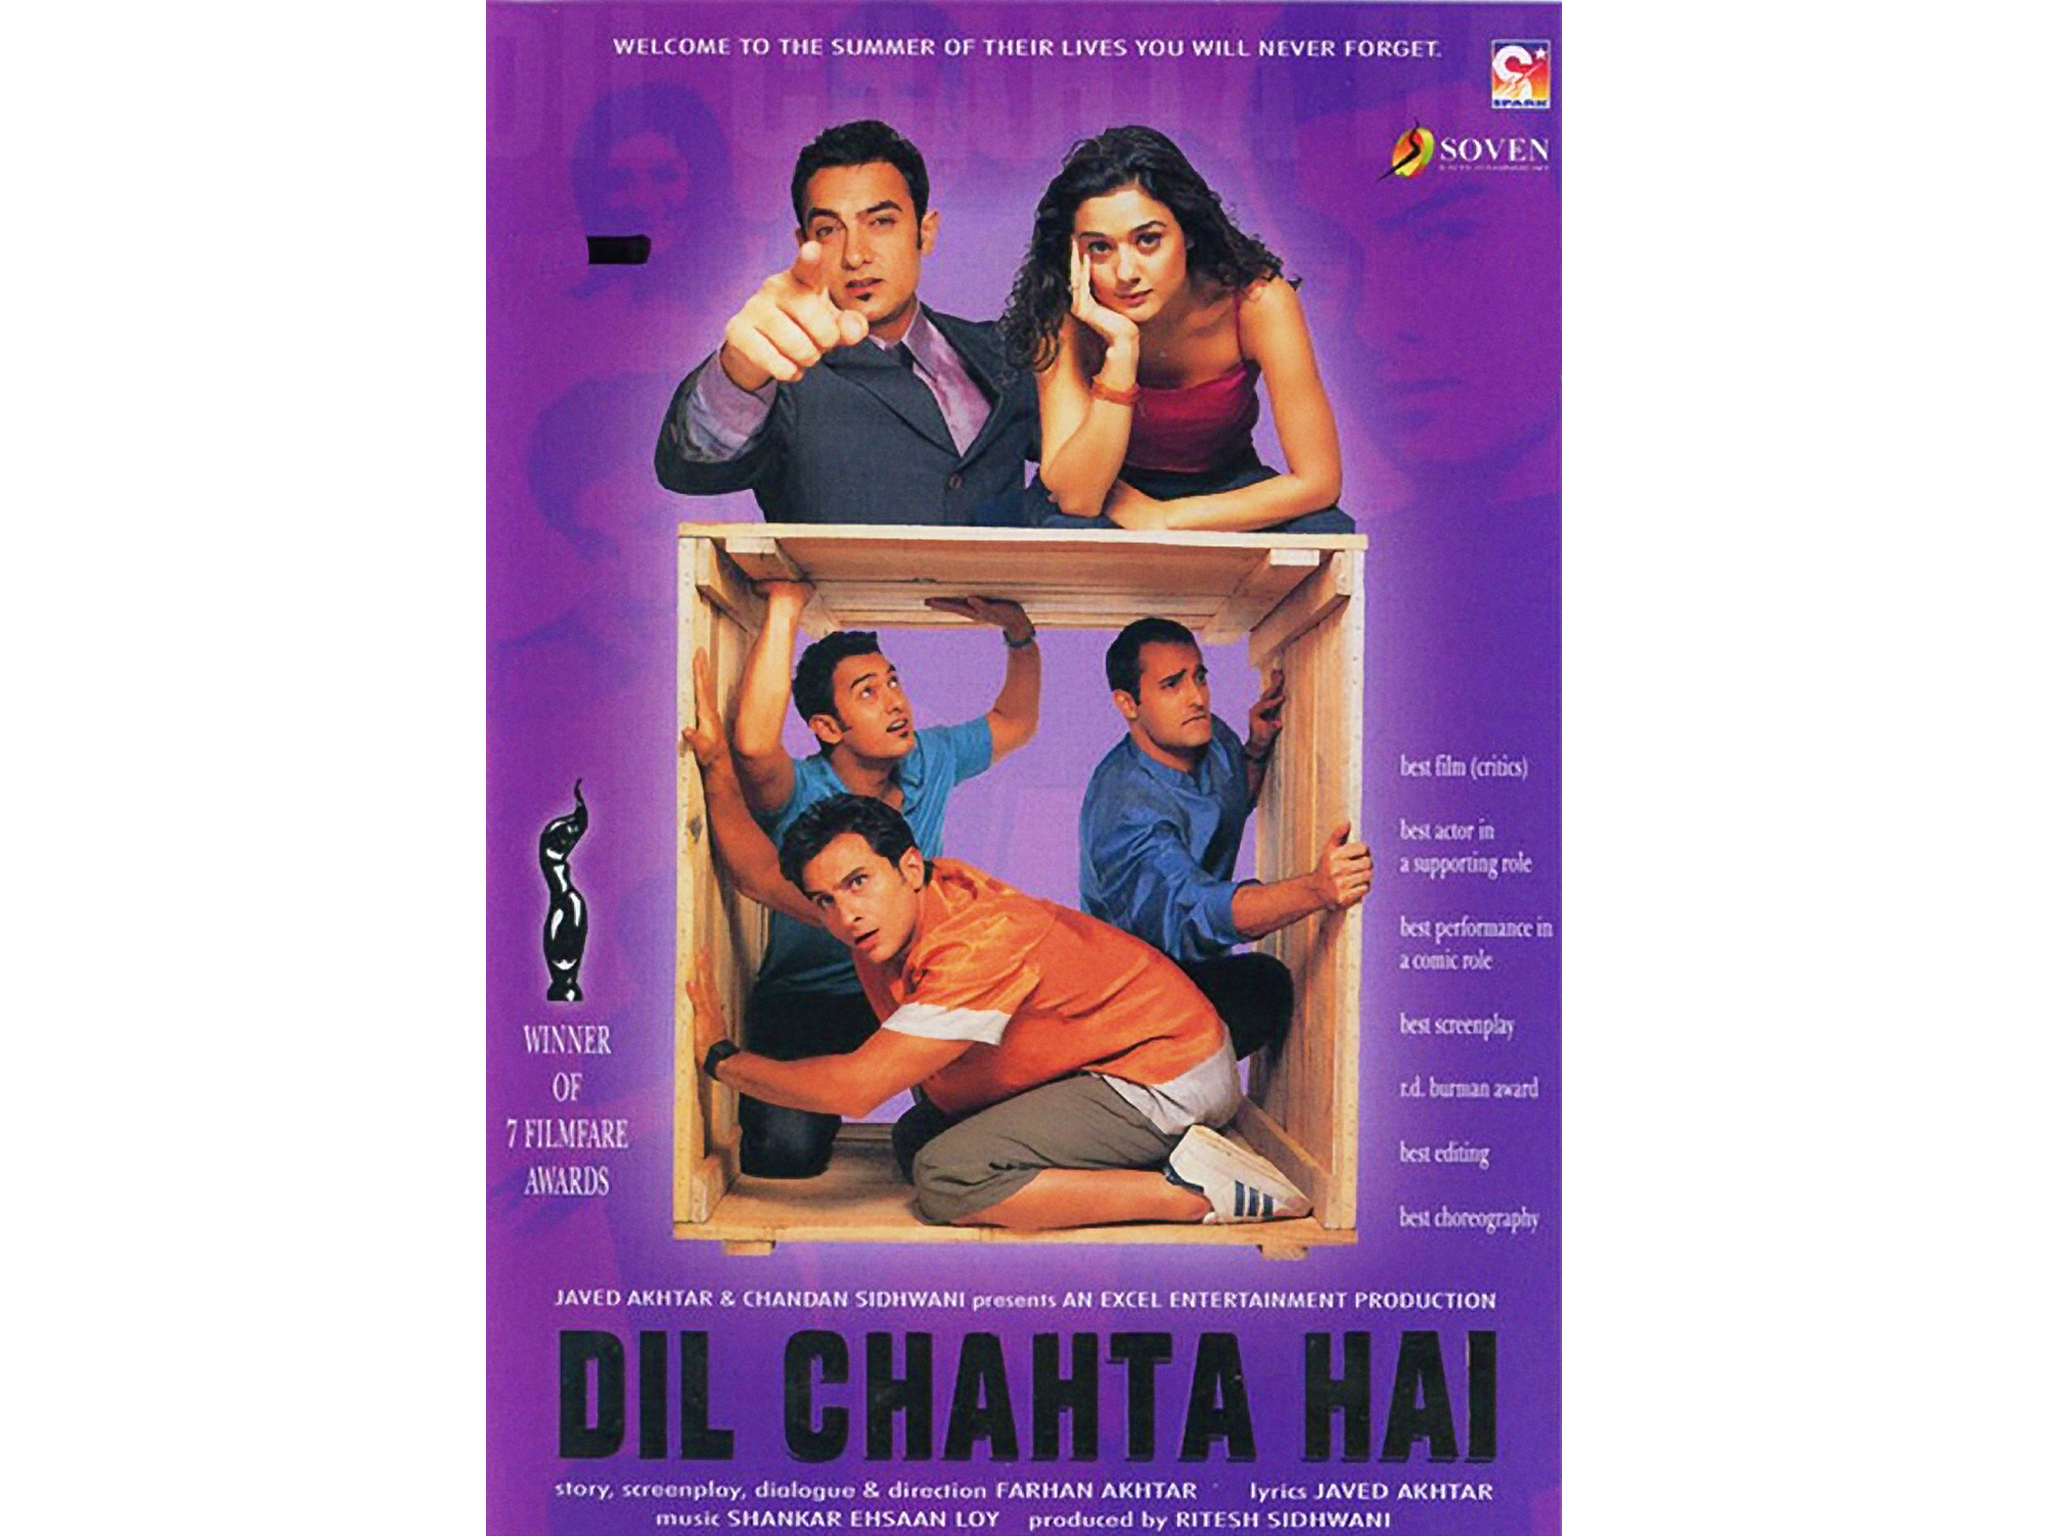 Bollywood movie: Dil Chahta Hai